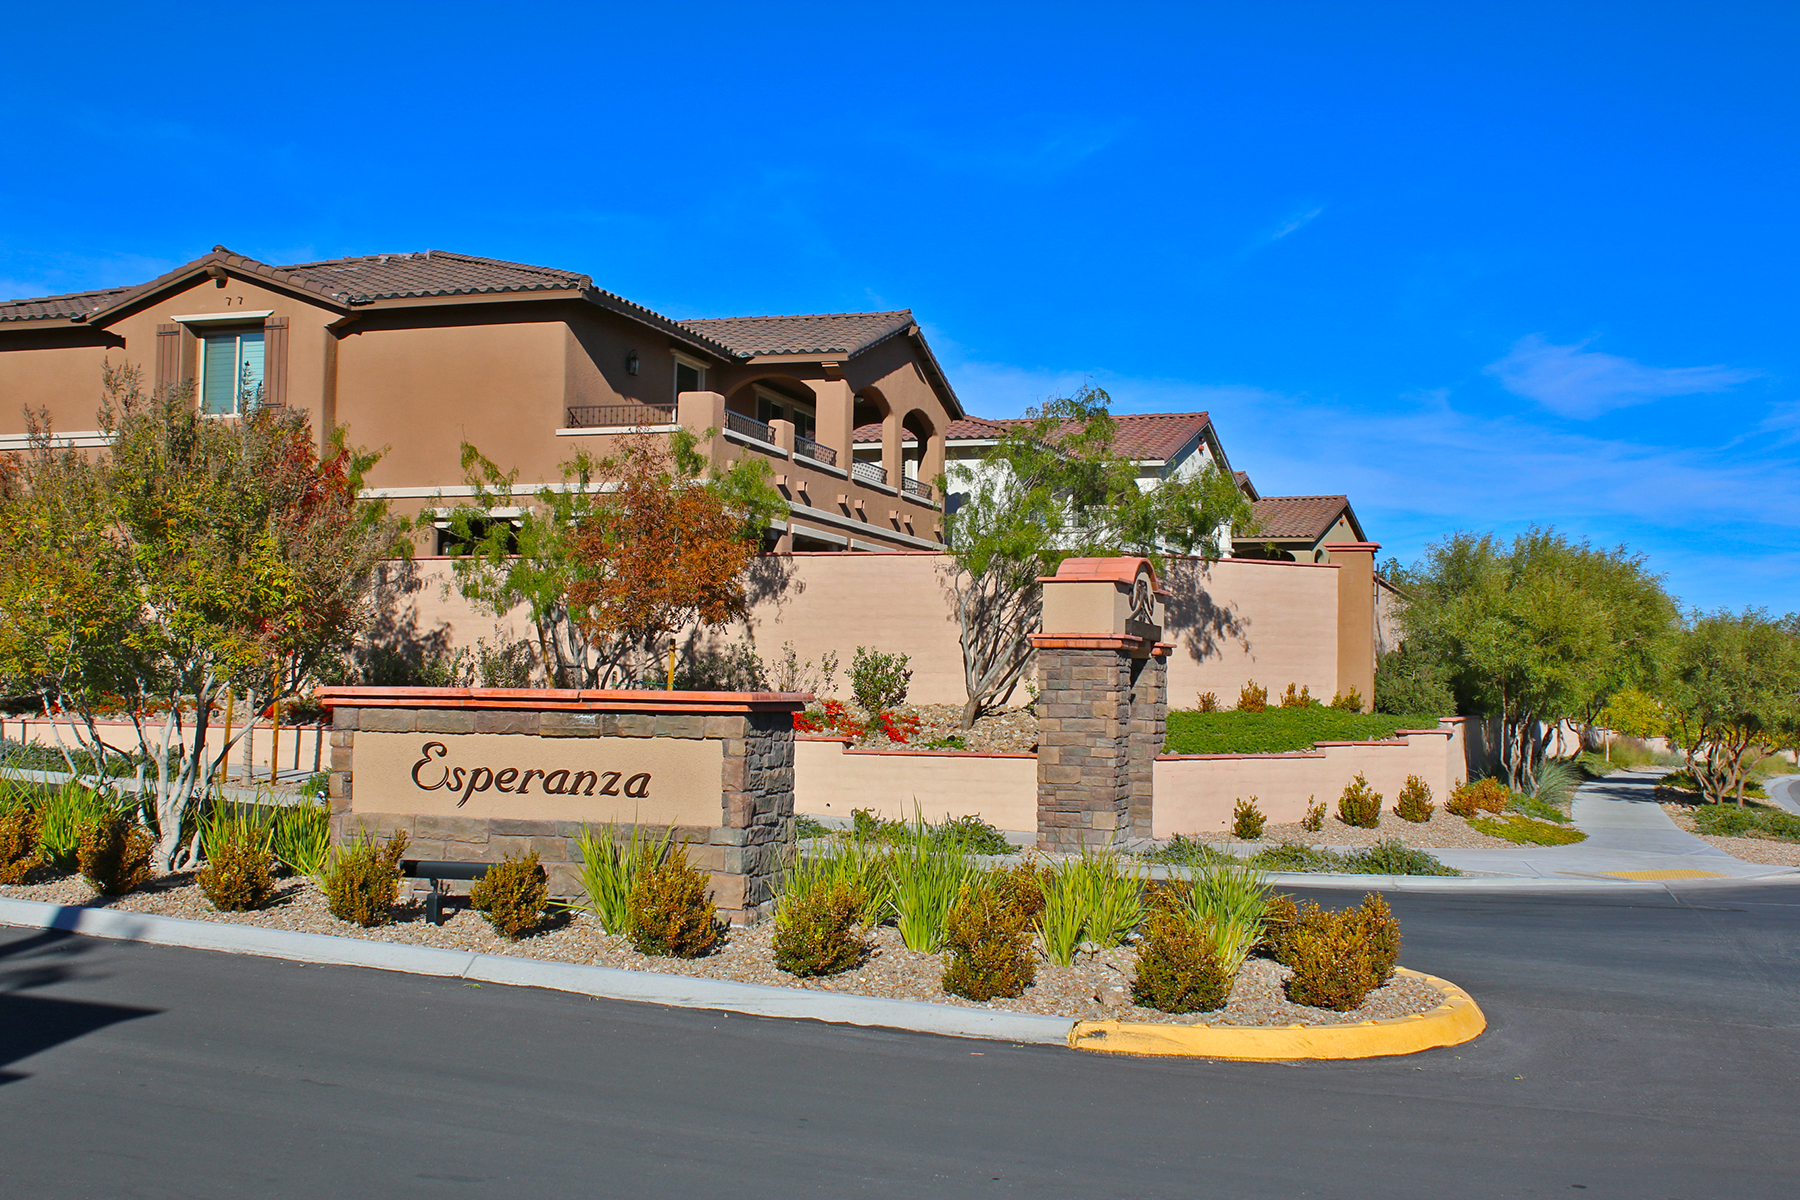 Esperanza Homes For Sale Summerlin The Paseos Las Vegas